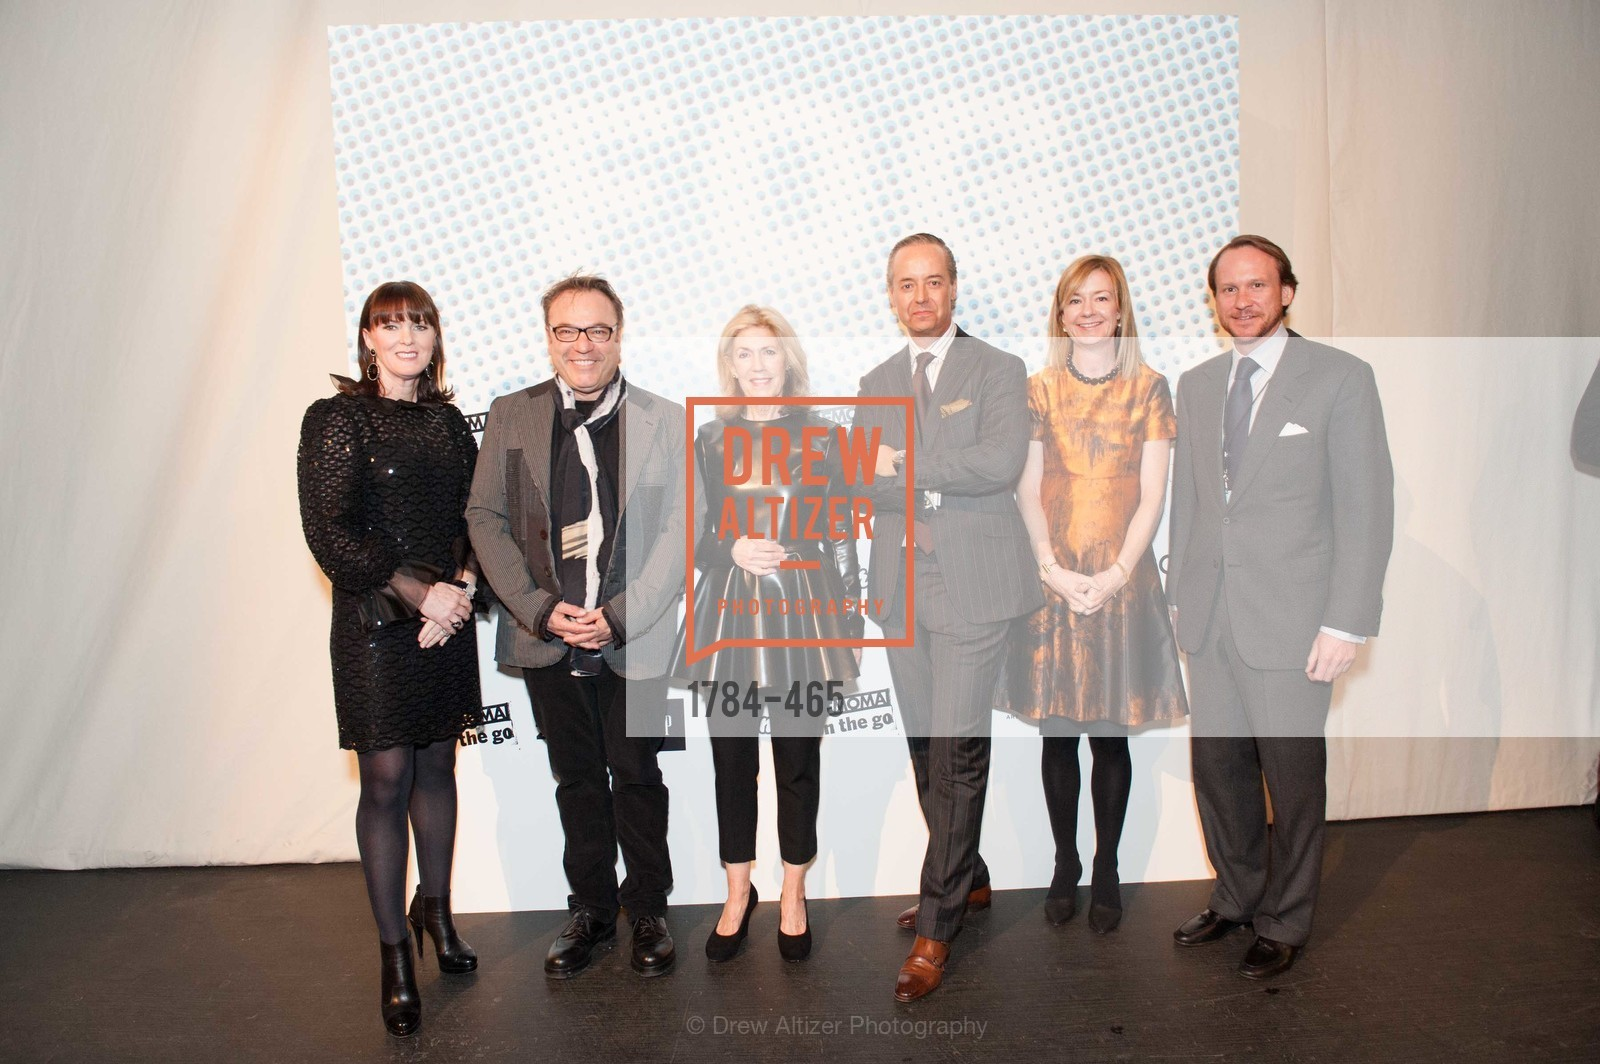 Allison Speer, Stanlee Gatti, Cathy Topham, Douglas Durkin, Katie Schwab Paige, Roth Martin, FOG Design + Art Preview Gala, US. US, January 16th, 2014,Drew Altizer, Drew Altizer Photography, full-service agency, private events, San Francisco photographer, photographer california